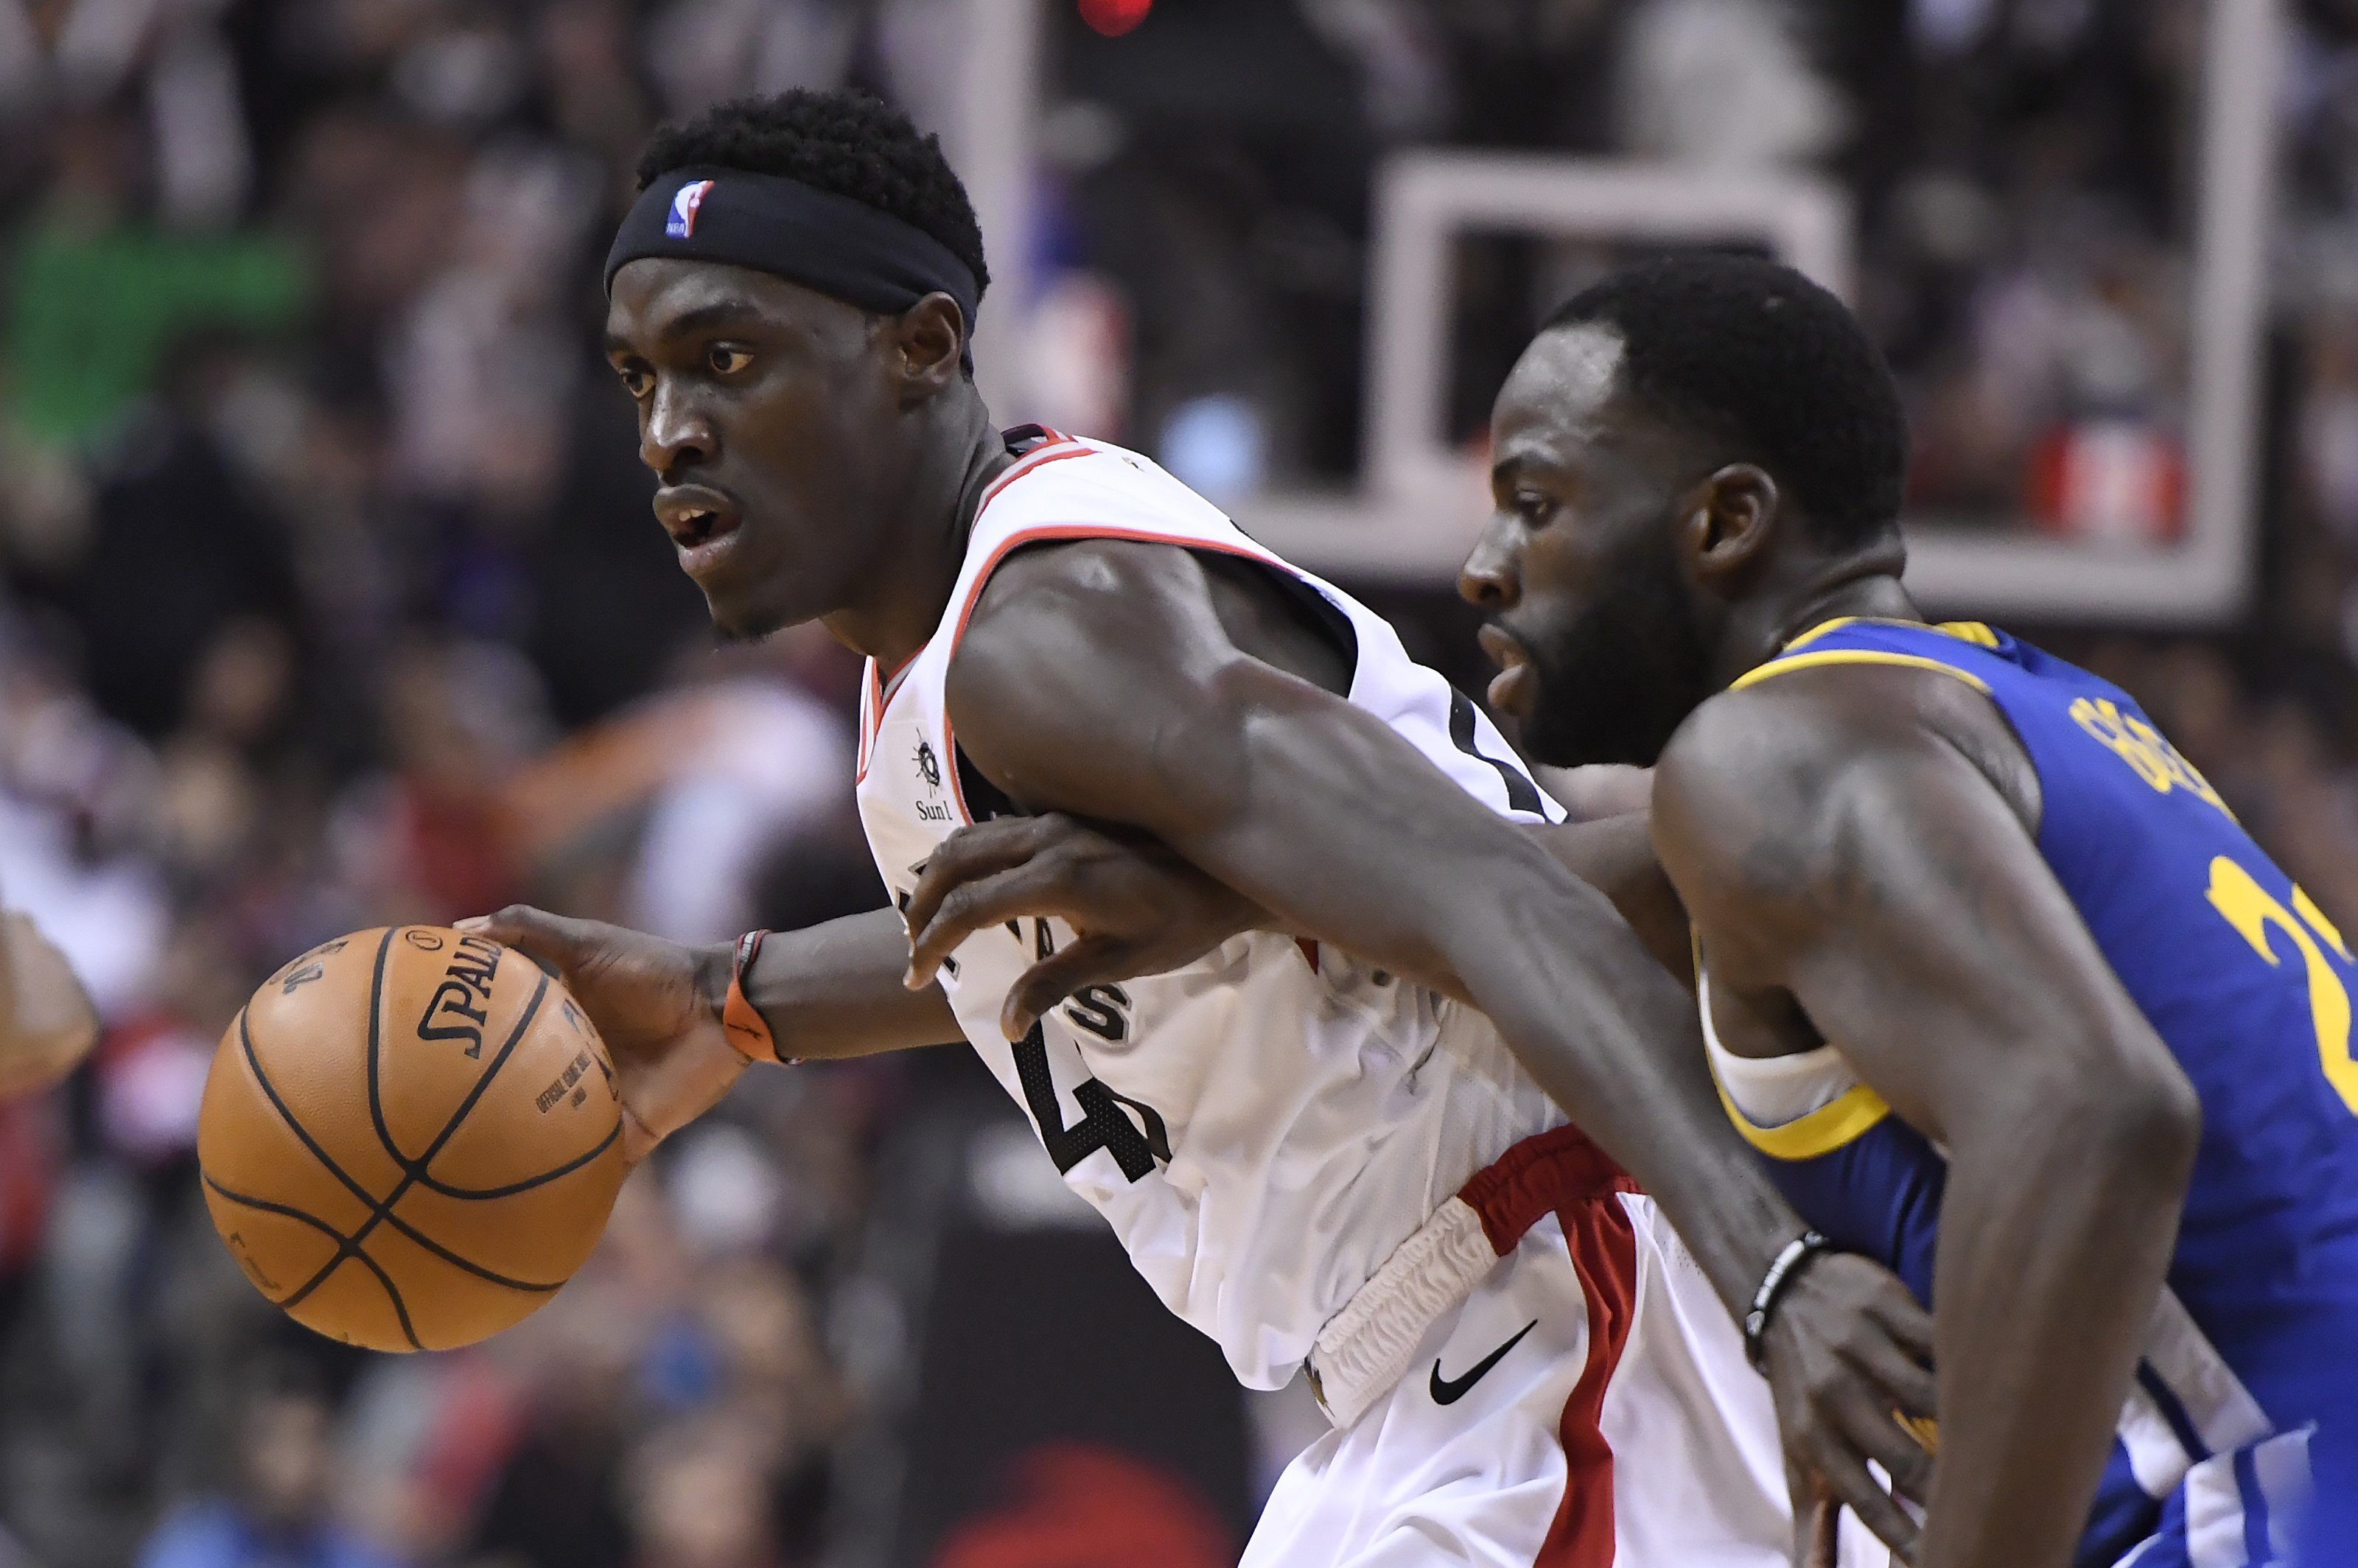 55bdb1cd093 Toronto Raptors forward Pascal Siakam (43) controls the ball as Golden  State Warriors forward Draymond Green (23) defends during second half  basketball ...